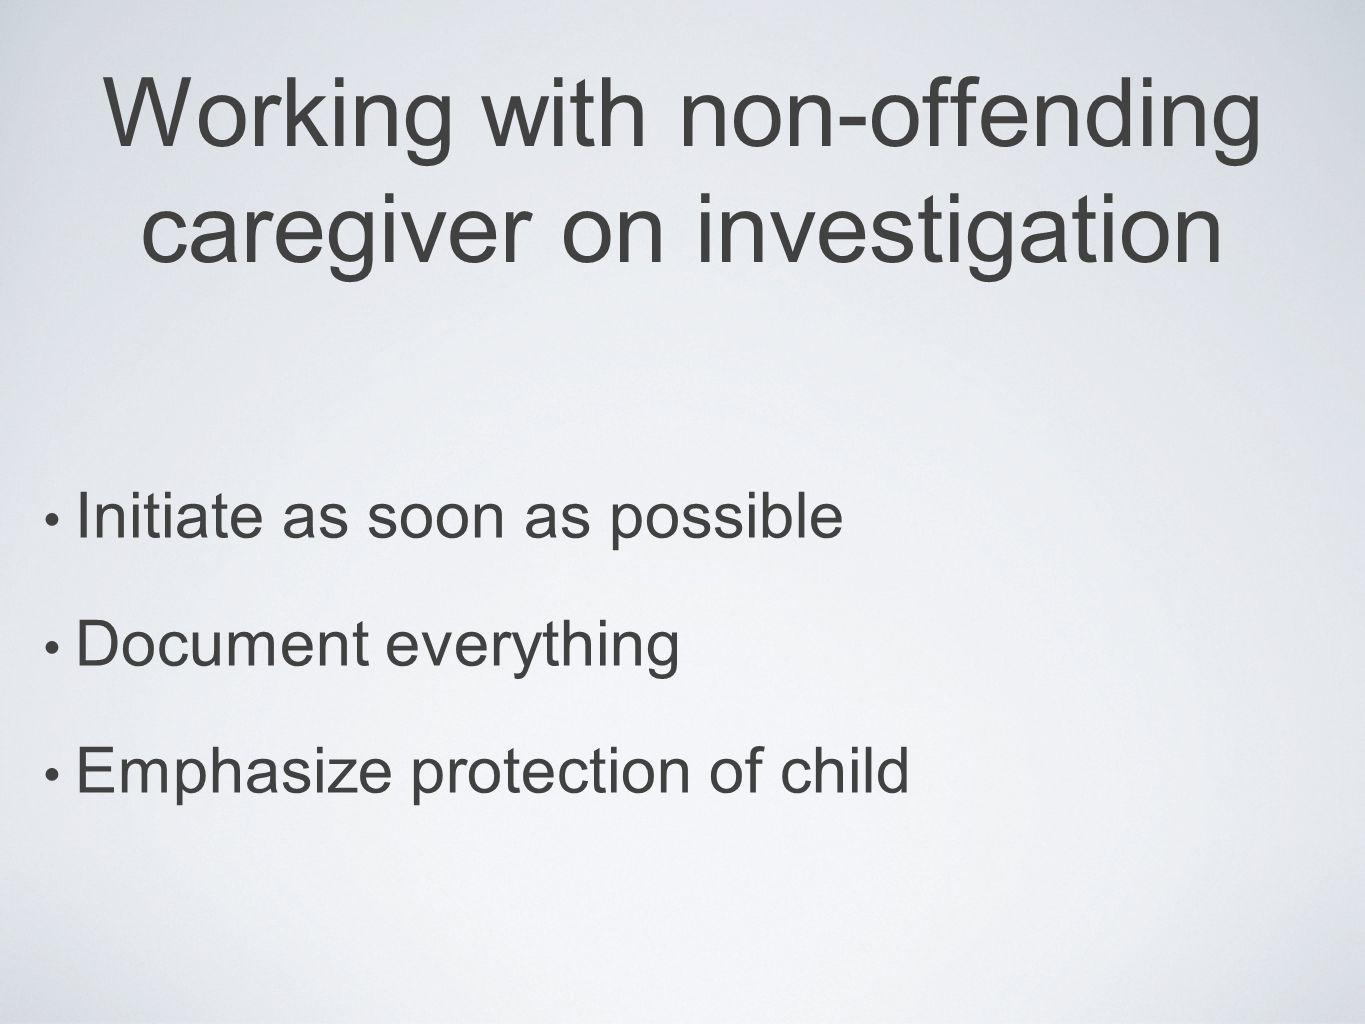 Working with non-offending caregiver on investigation